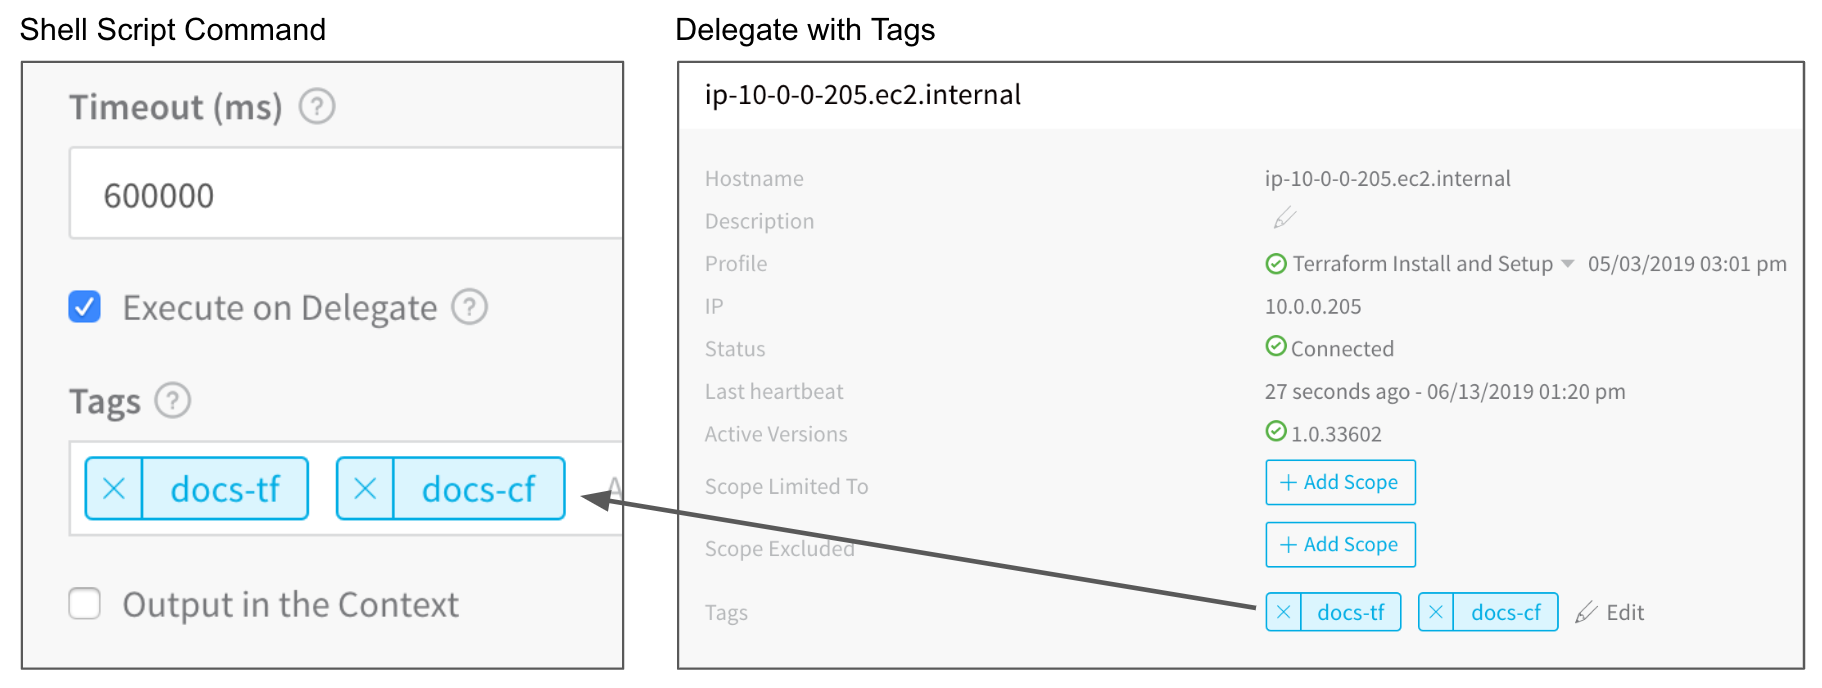 Delegate Installation and Management - Harness io Docs